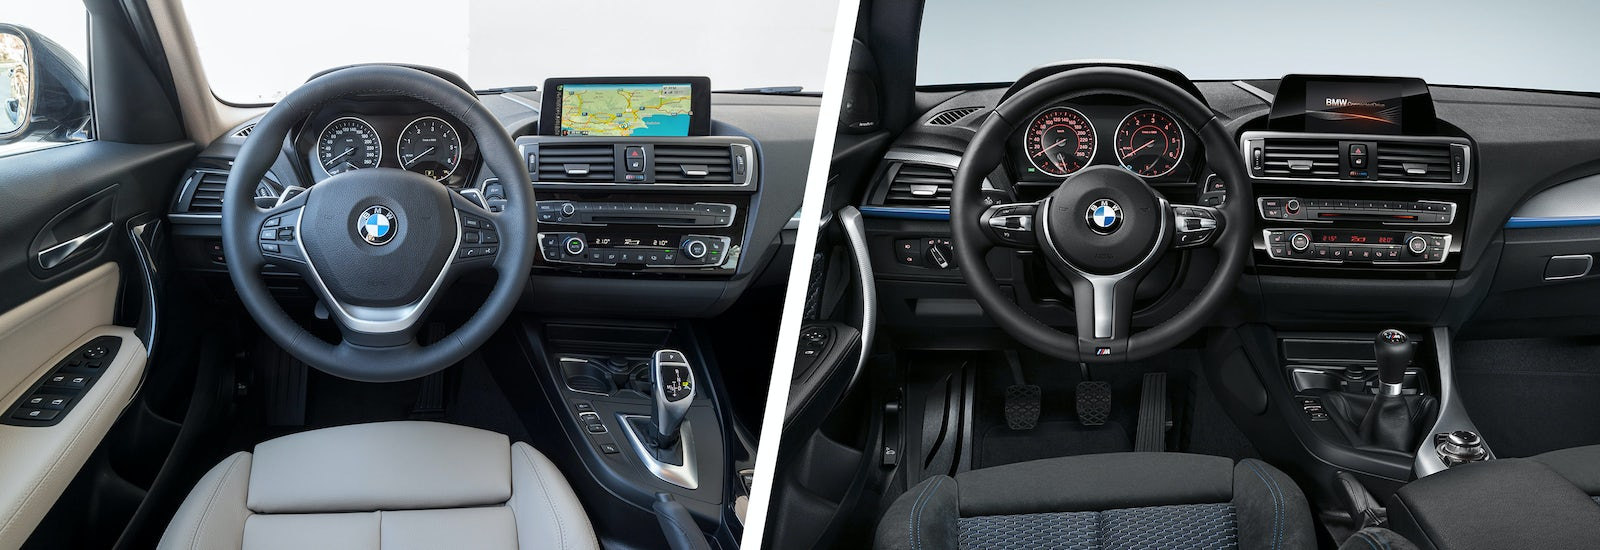 BMW M Sport Vs Non Interior